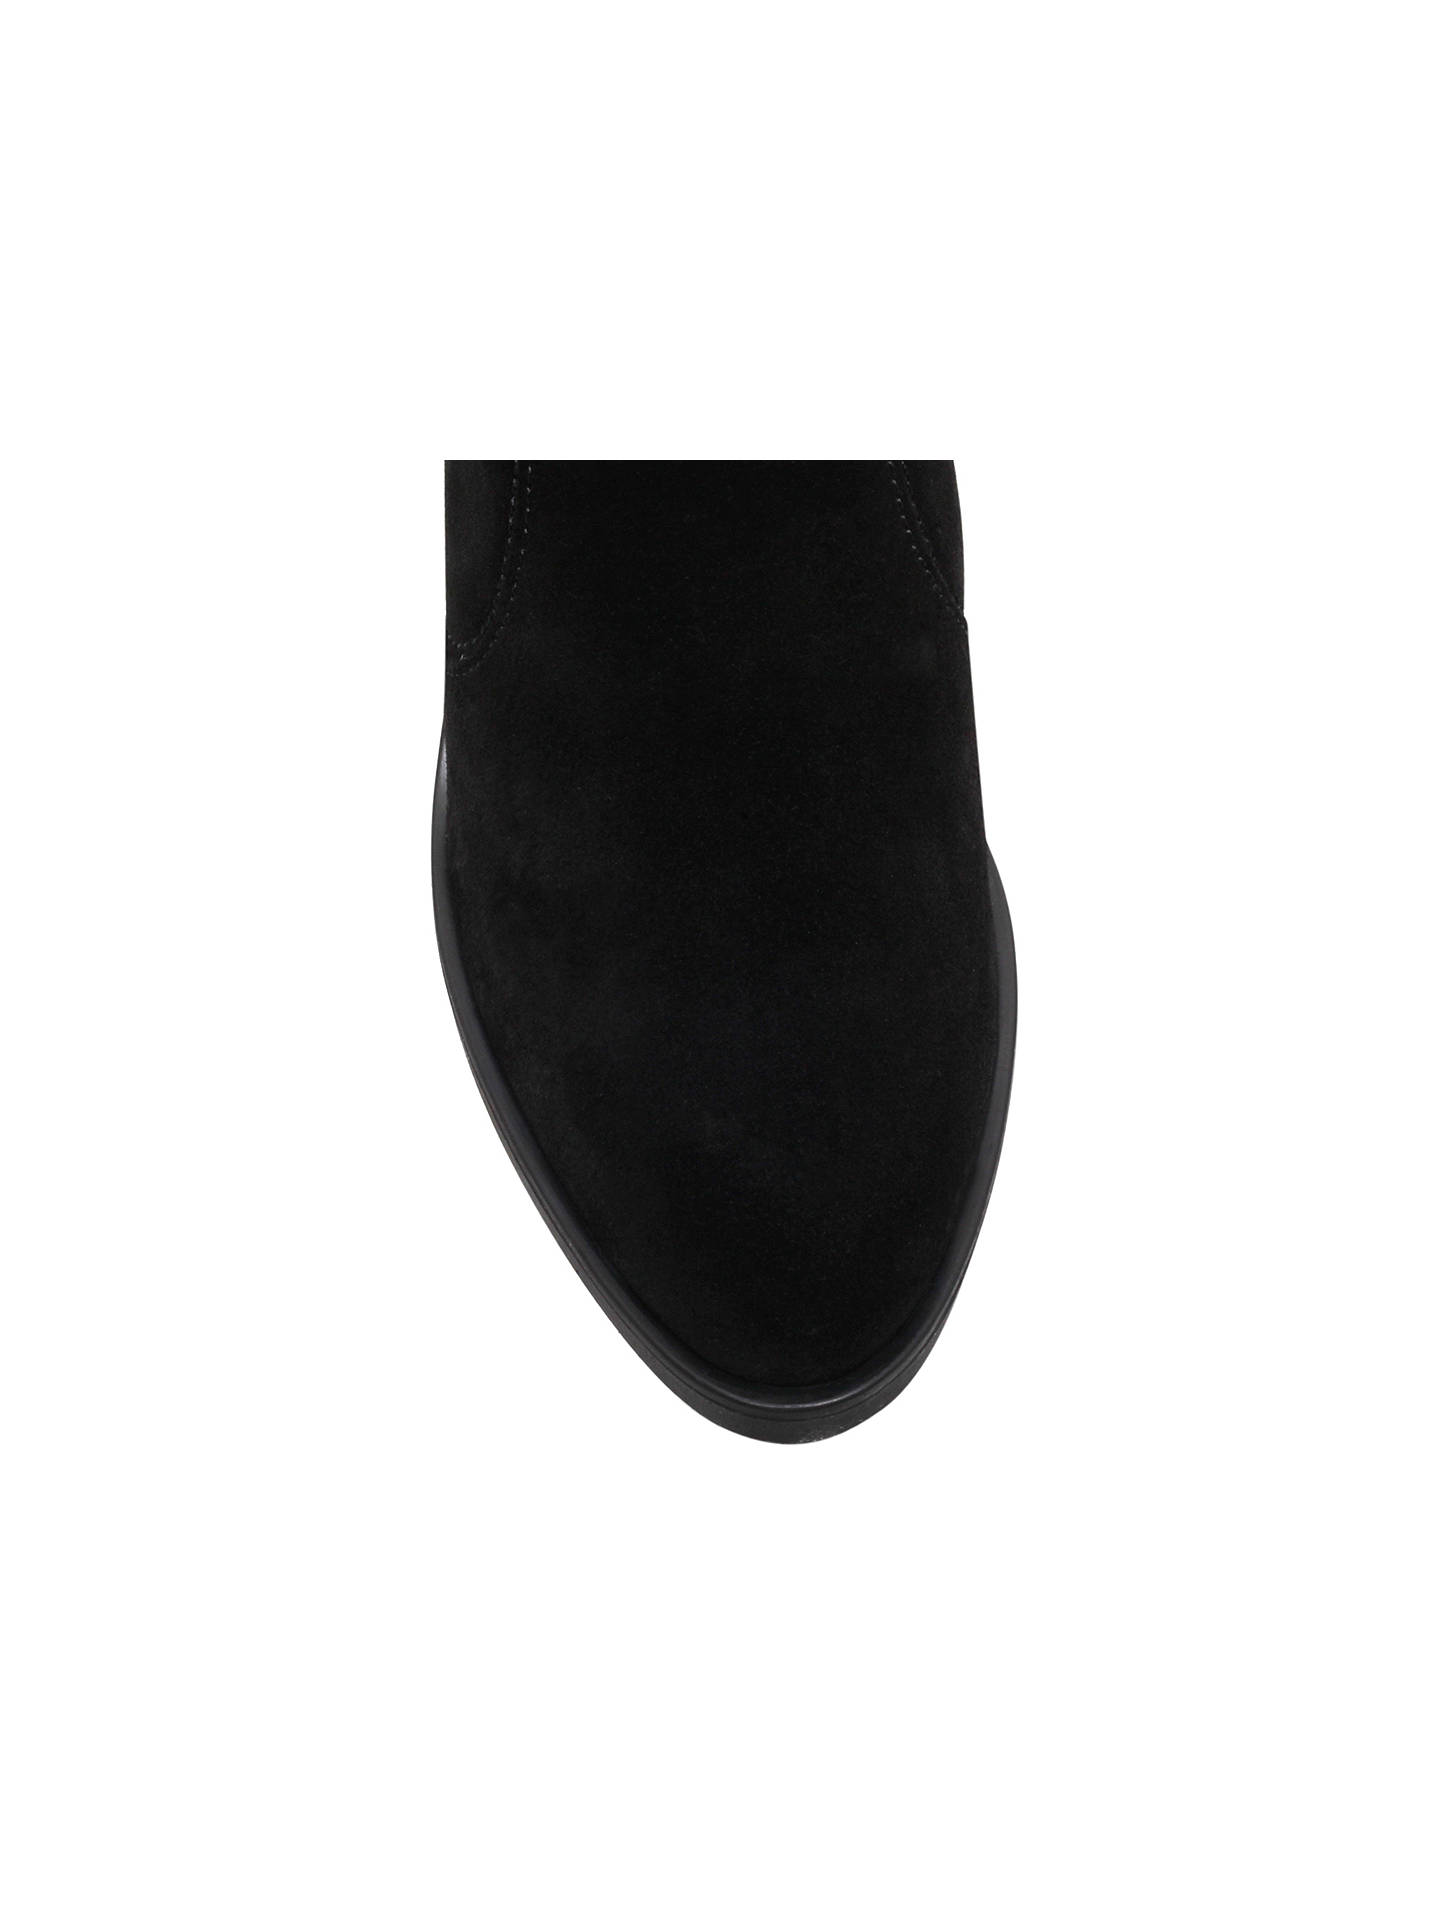 BuyKG Kurt Geiger Sicily High Heel Ankle Boots, Black Suede, 3 Online at johnlewis.com